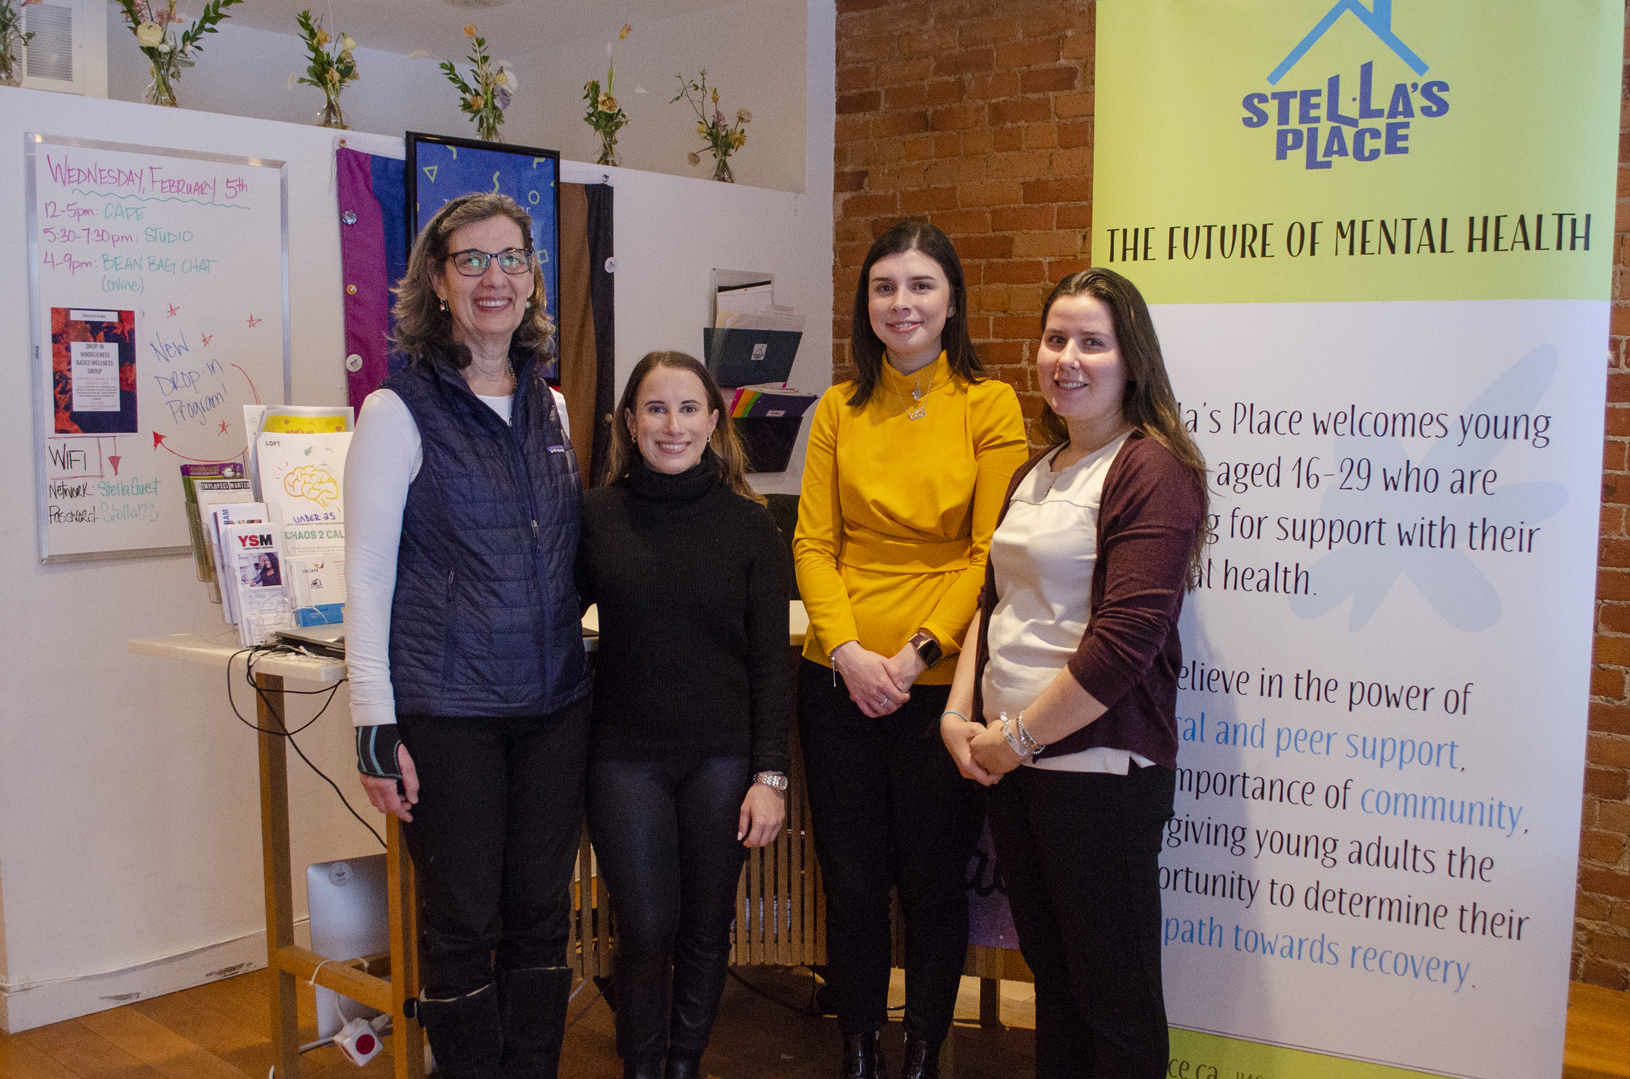 A group photo of the Aubrey & Marla Dan Foundation standing with Founder, Donna Green, and Peer Initiatives Manager, Allison Dunning in the Stella's Place café.